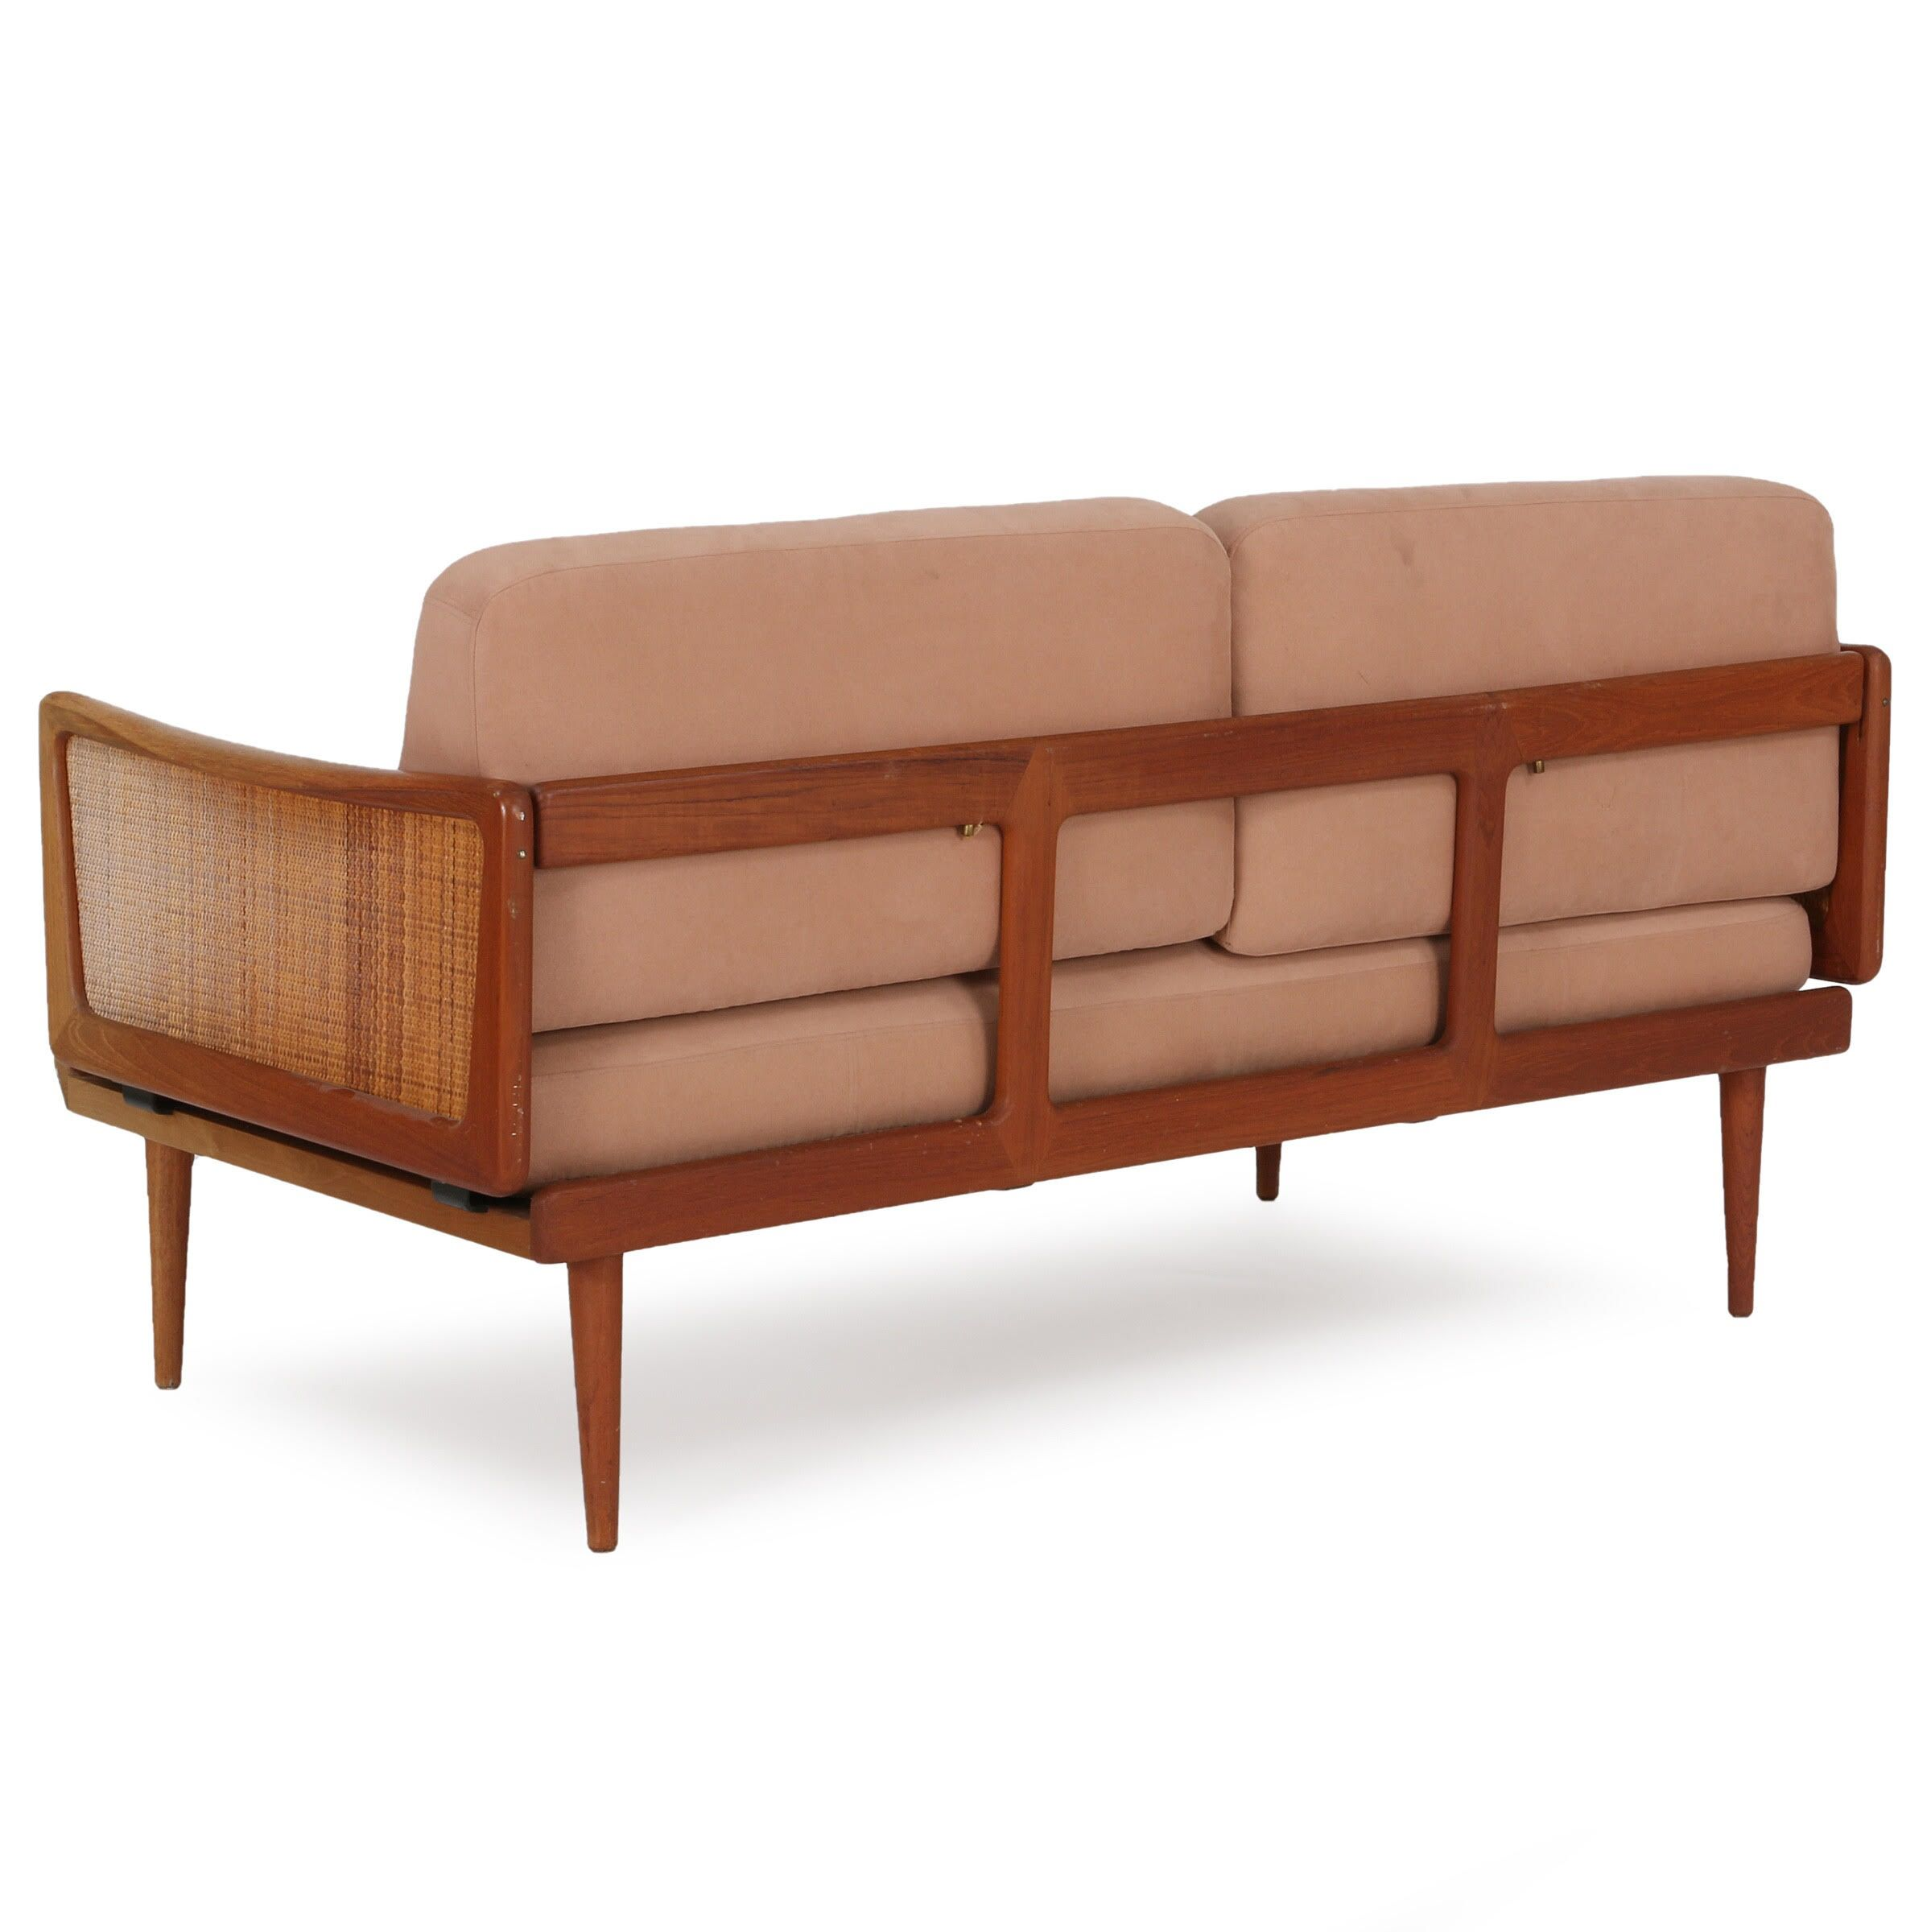 00cf382e5cb25 Vintage sofa 2 seat daybed FD 451 by Peter Hvidt and Orla Molgaard ...